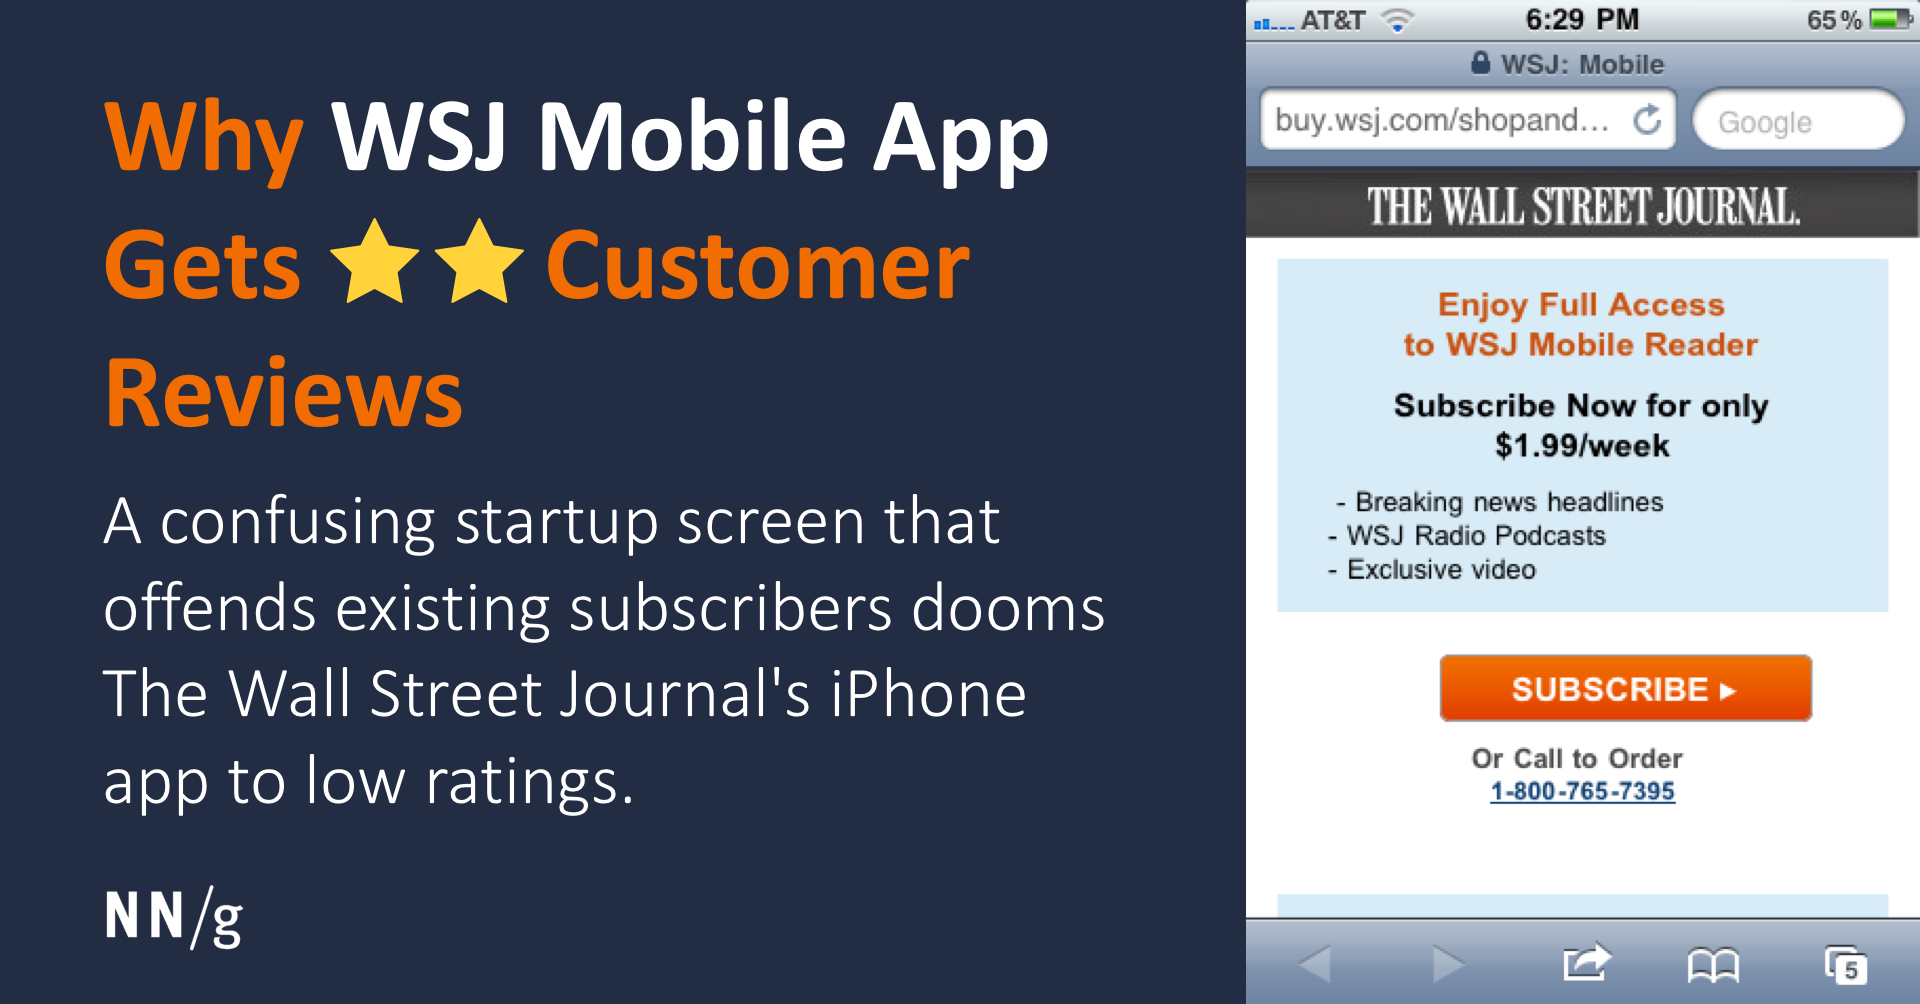 Why WSJ Mobile App Gets ** Customer Reviews